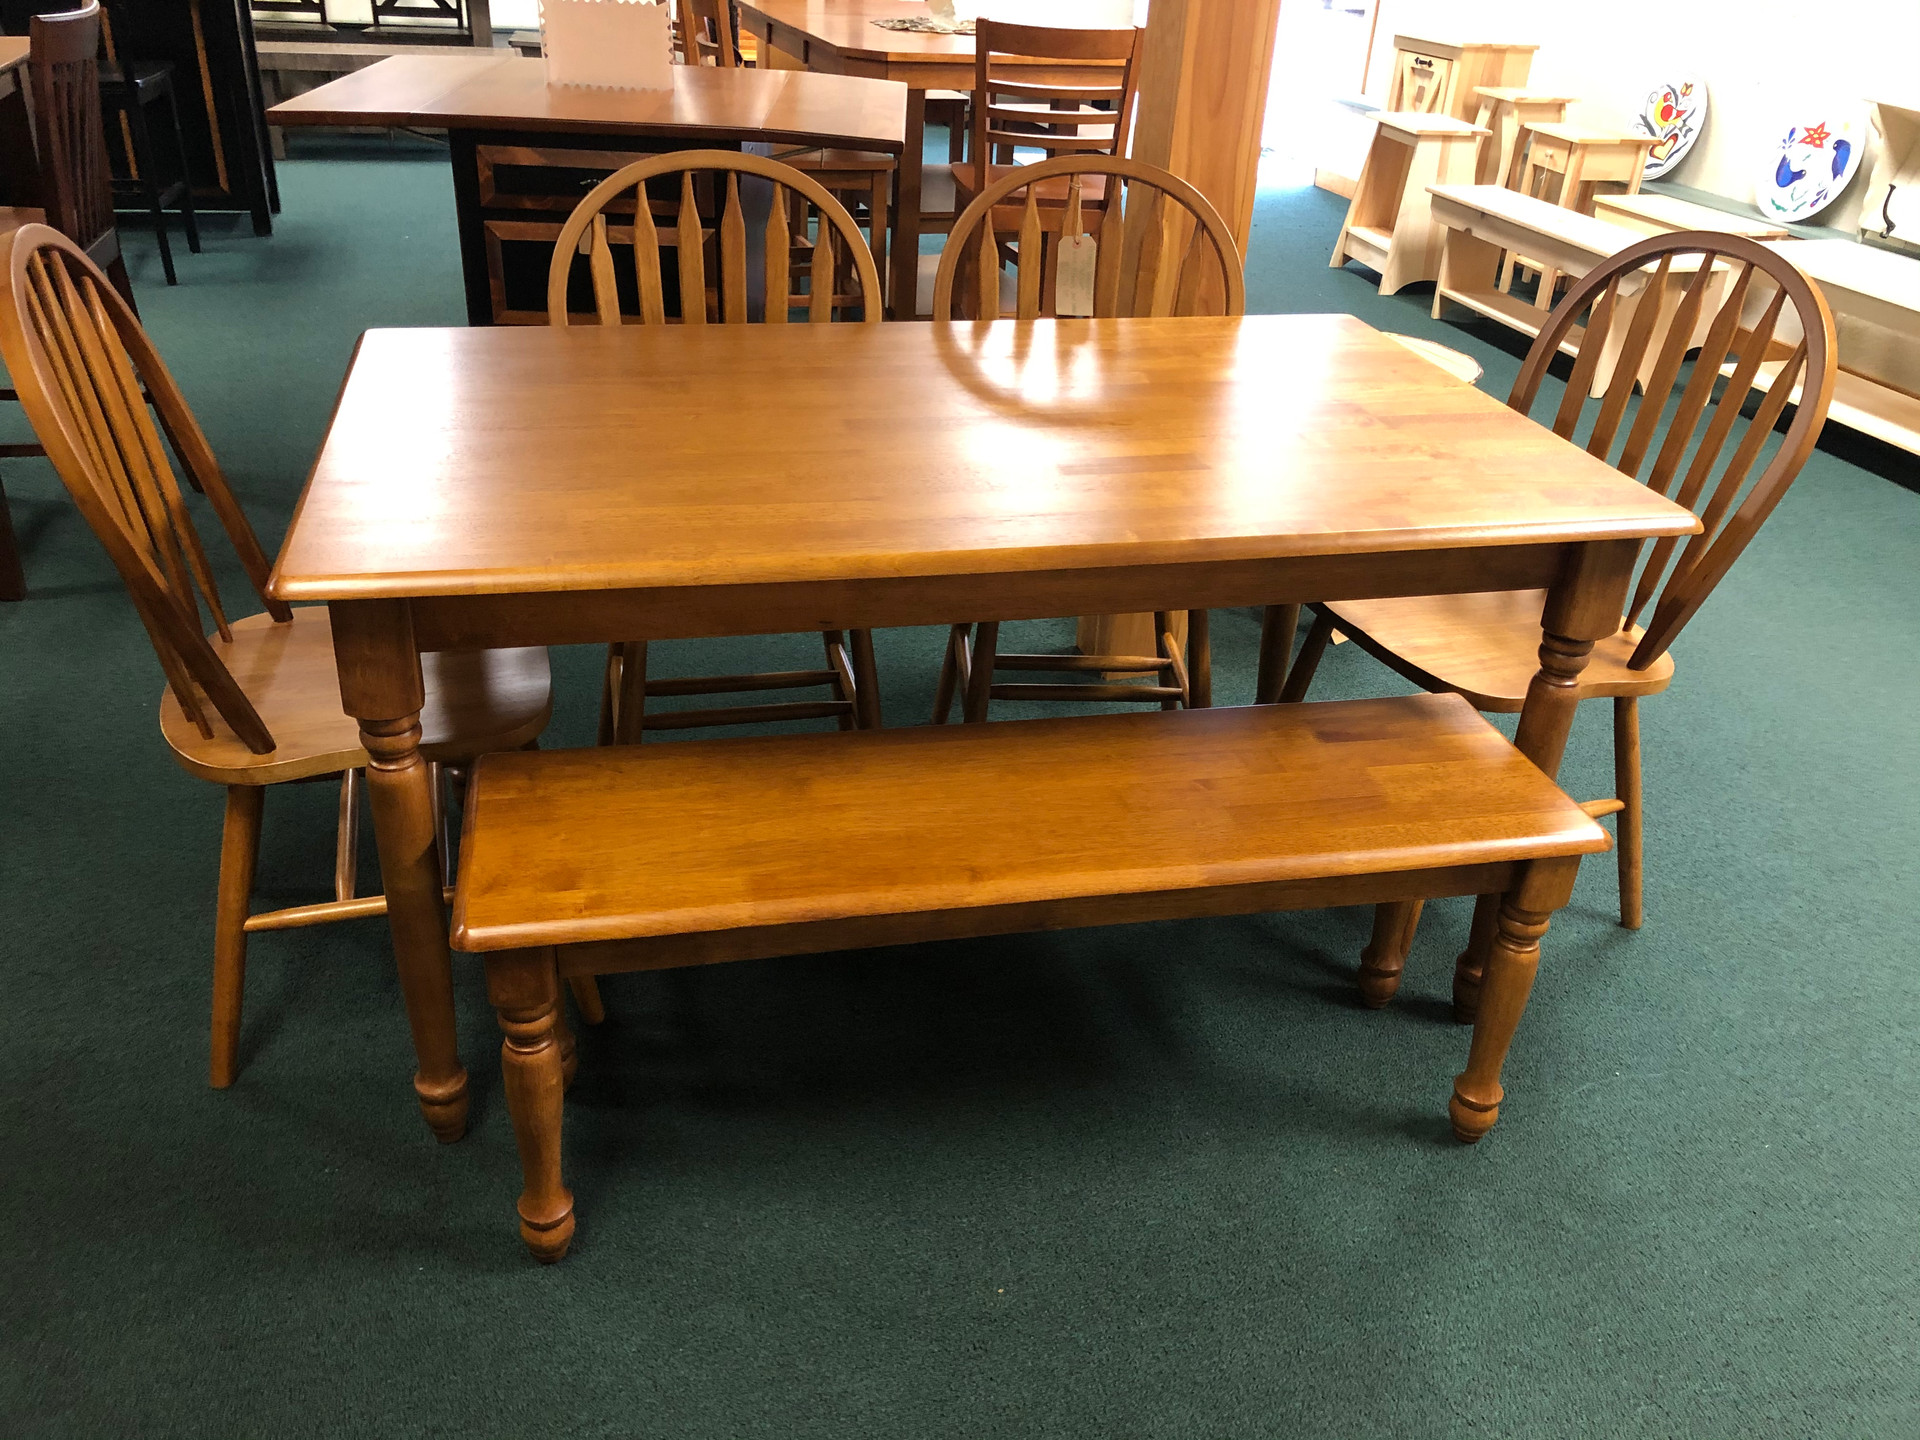 Farmhouse Table w/ 4 Chairs and Bench